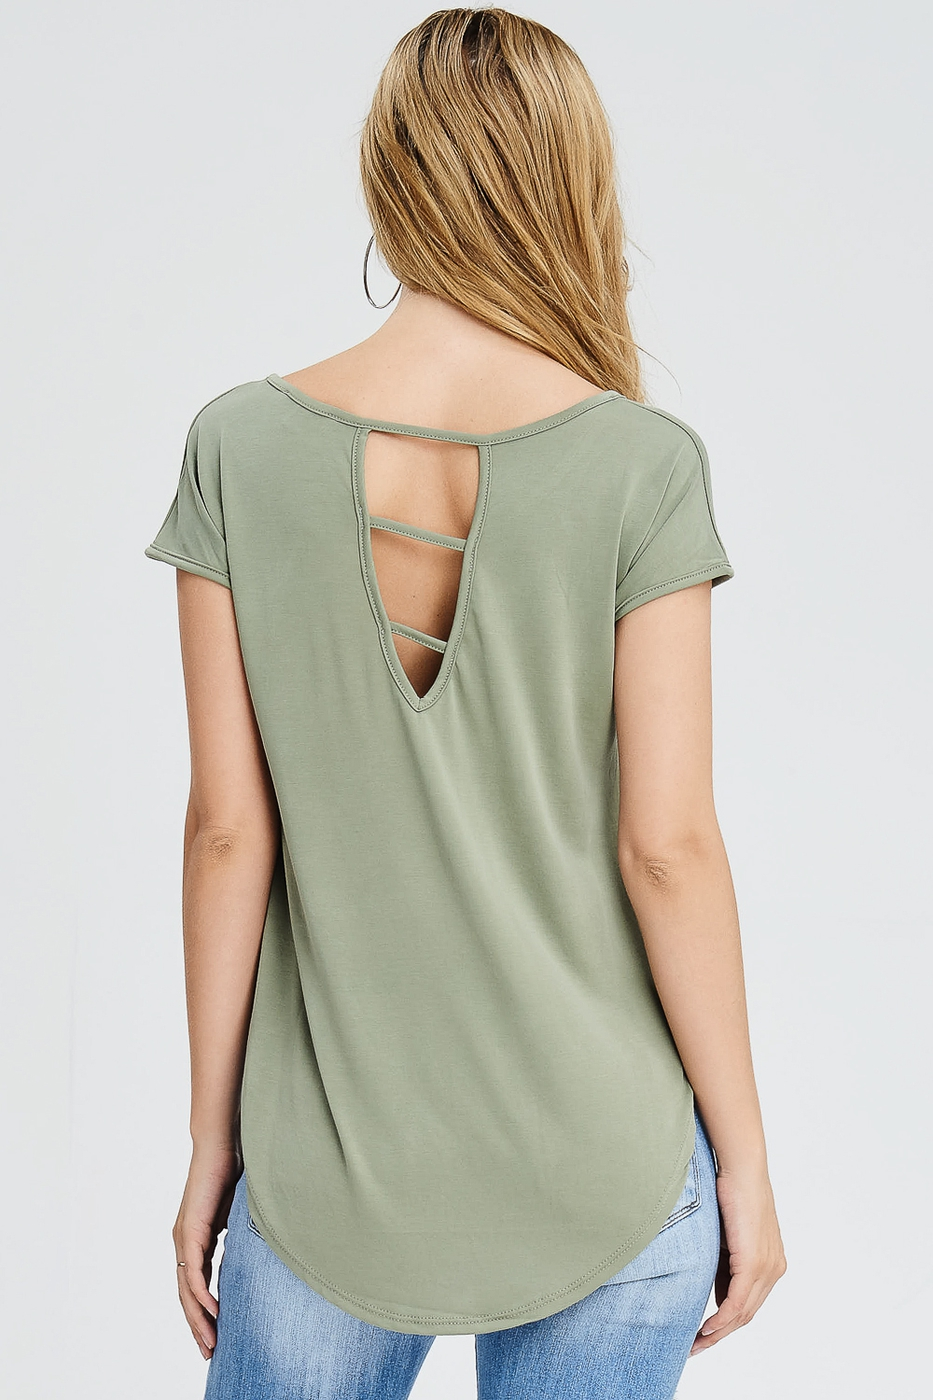 Cutout Back Cap Sleeve Top - orangeshine.com